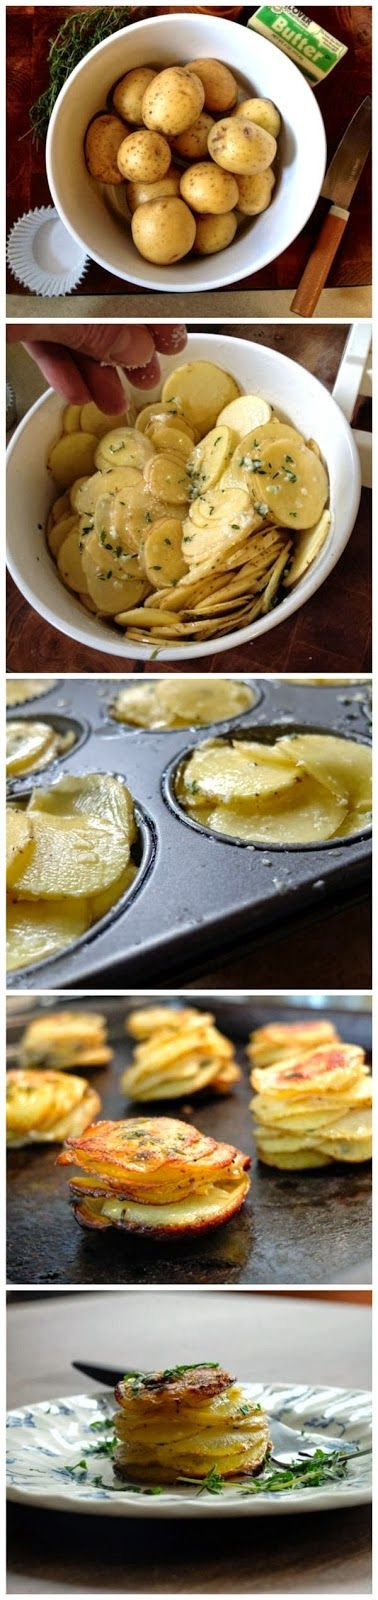 L'il Pomme Anna ~ Freshdreamer Replace butter with ghee and salt with Mrs Dash and this is a Whole30 recipe!